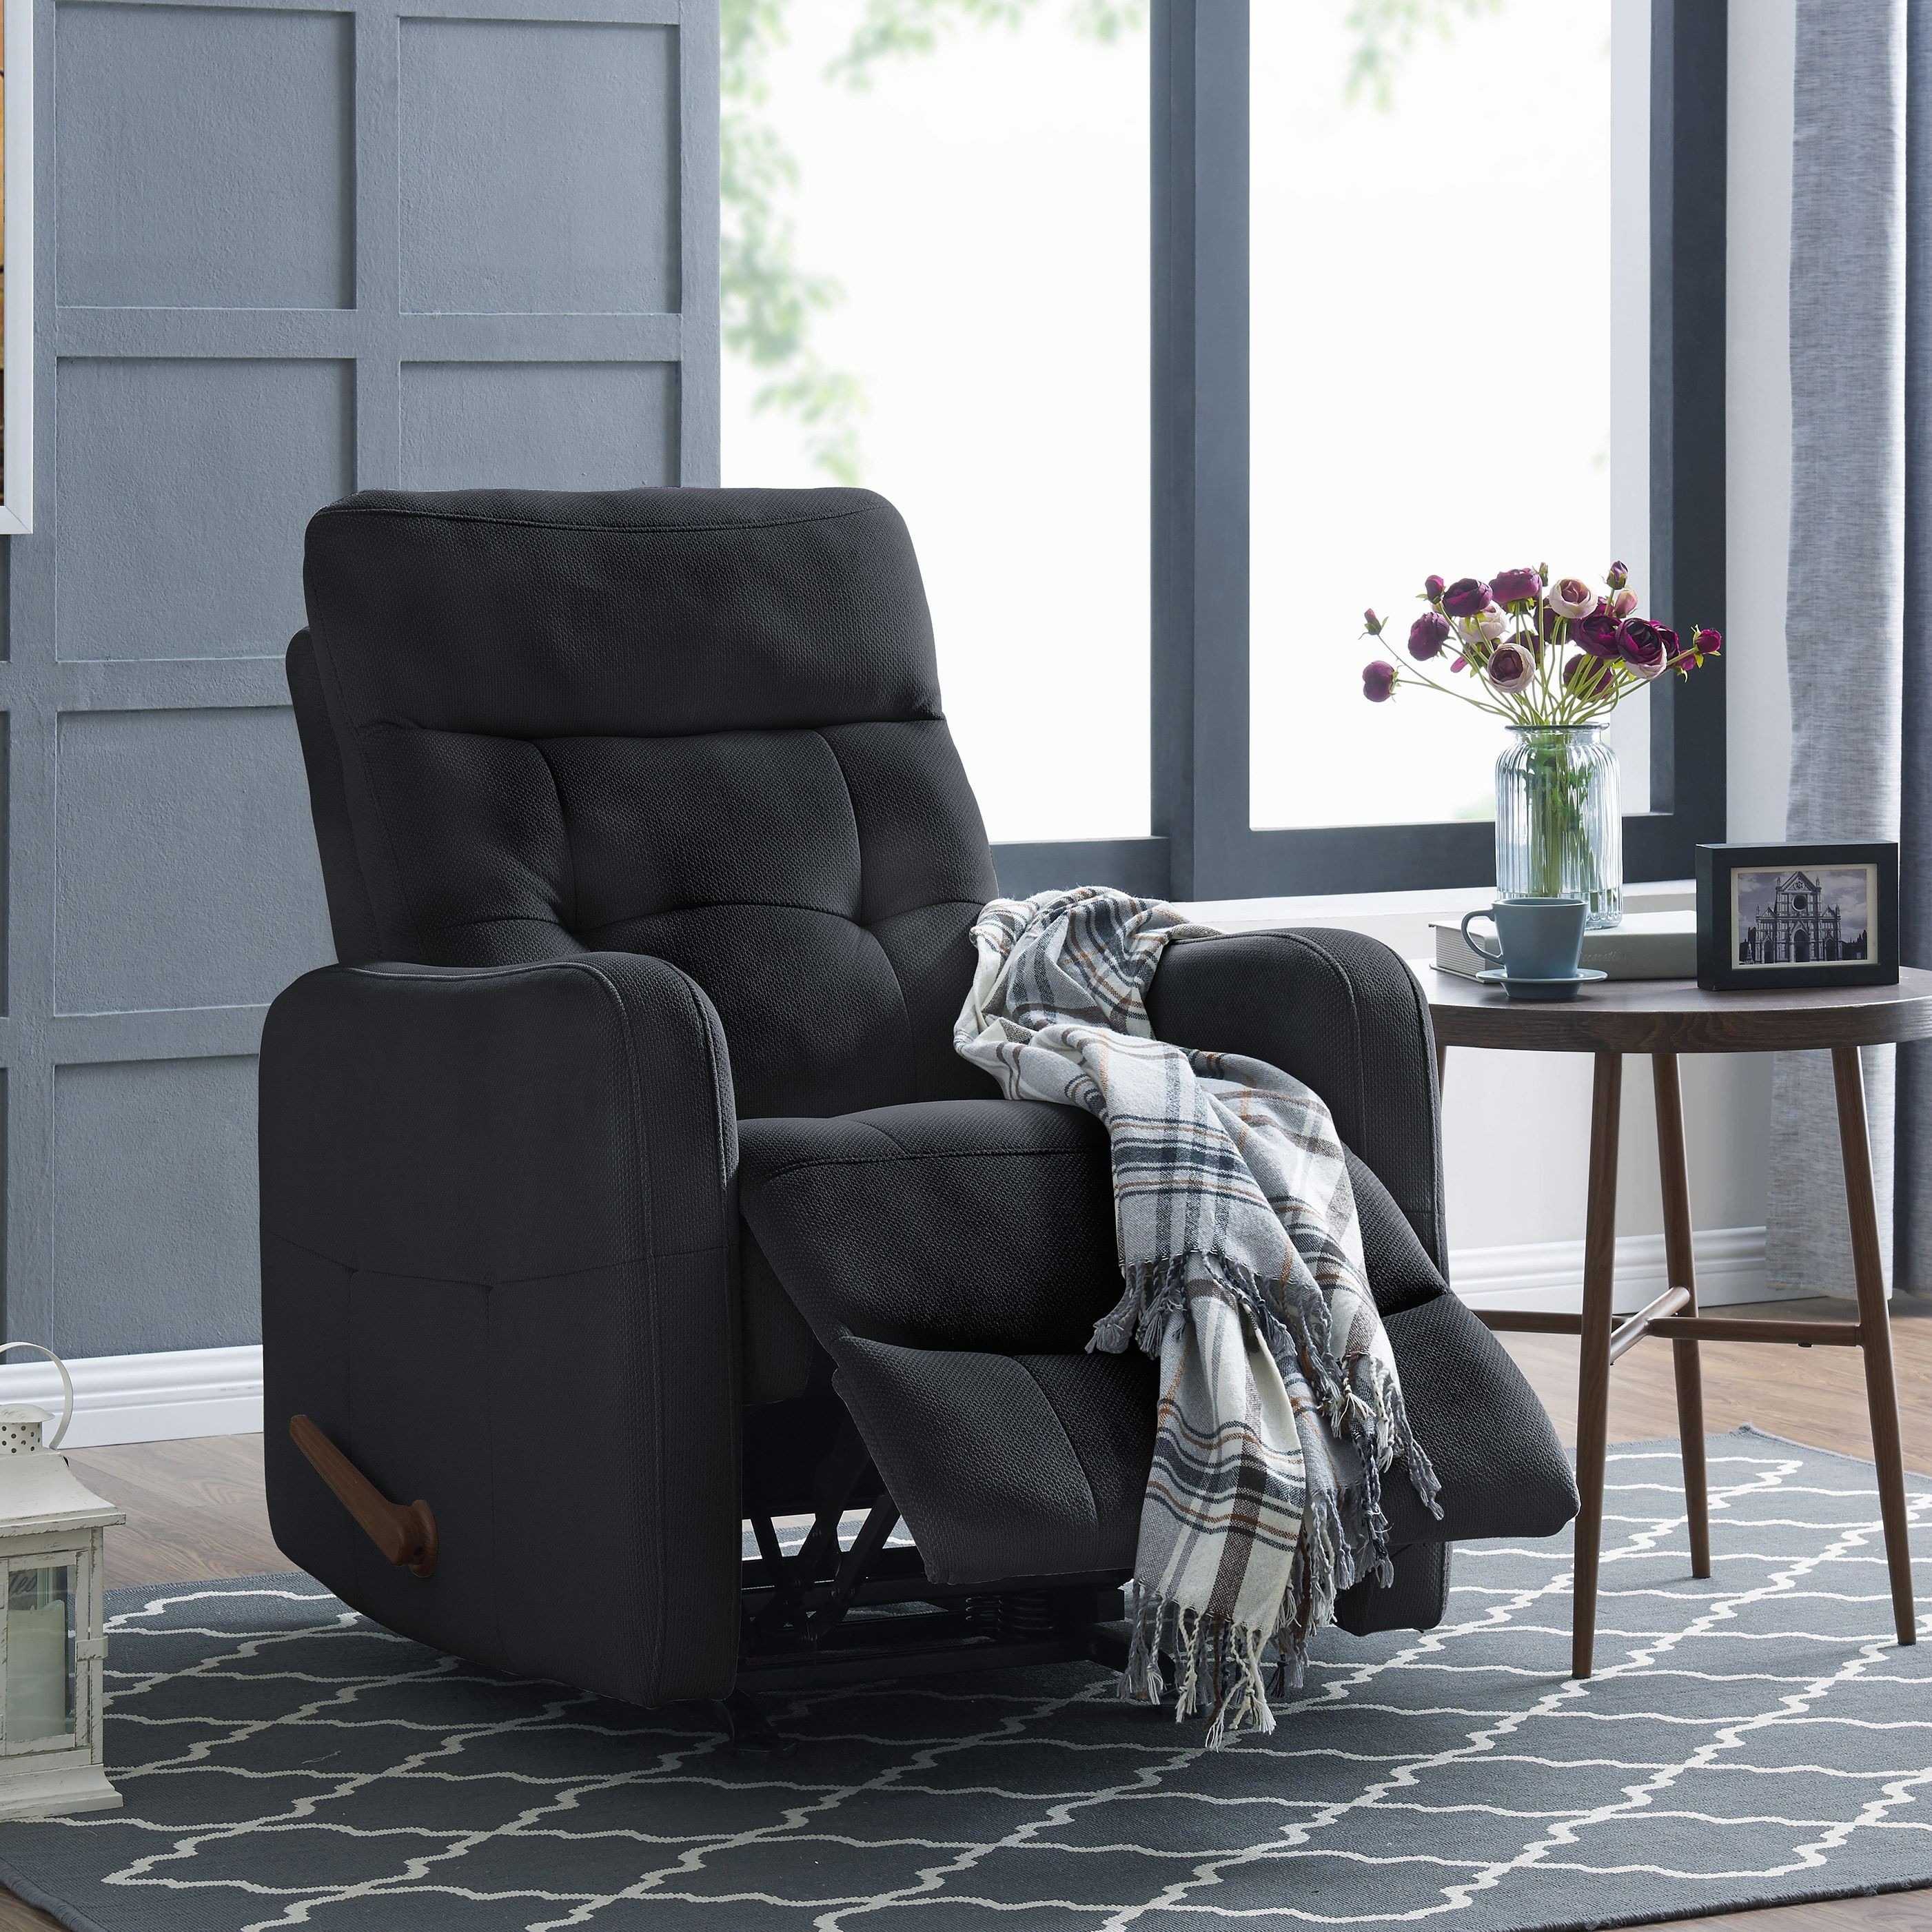 luxury reclining armchairs living room lumsden homes inspirational prolounger rocker recliner chair navy blue velour target slipcovers phone popsocket couch the range sofa beds